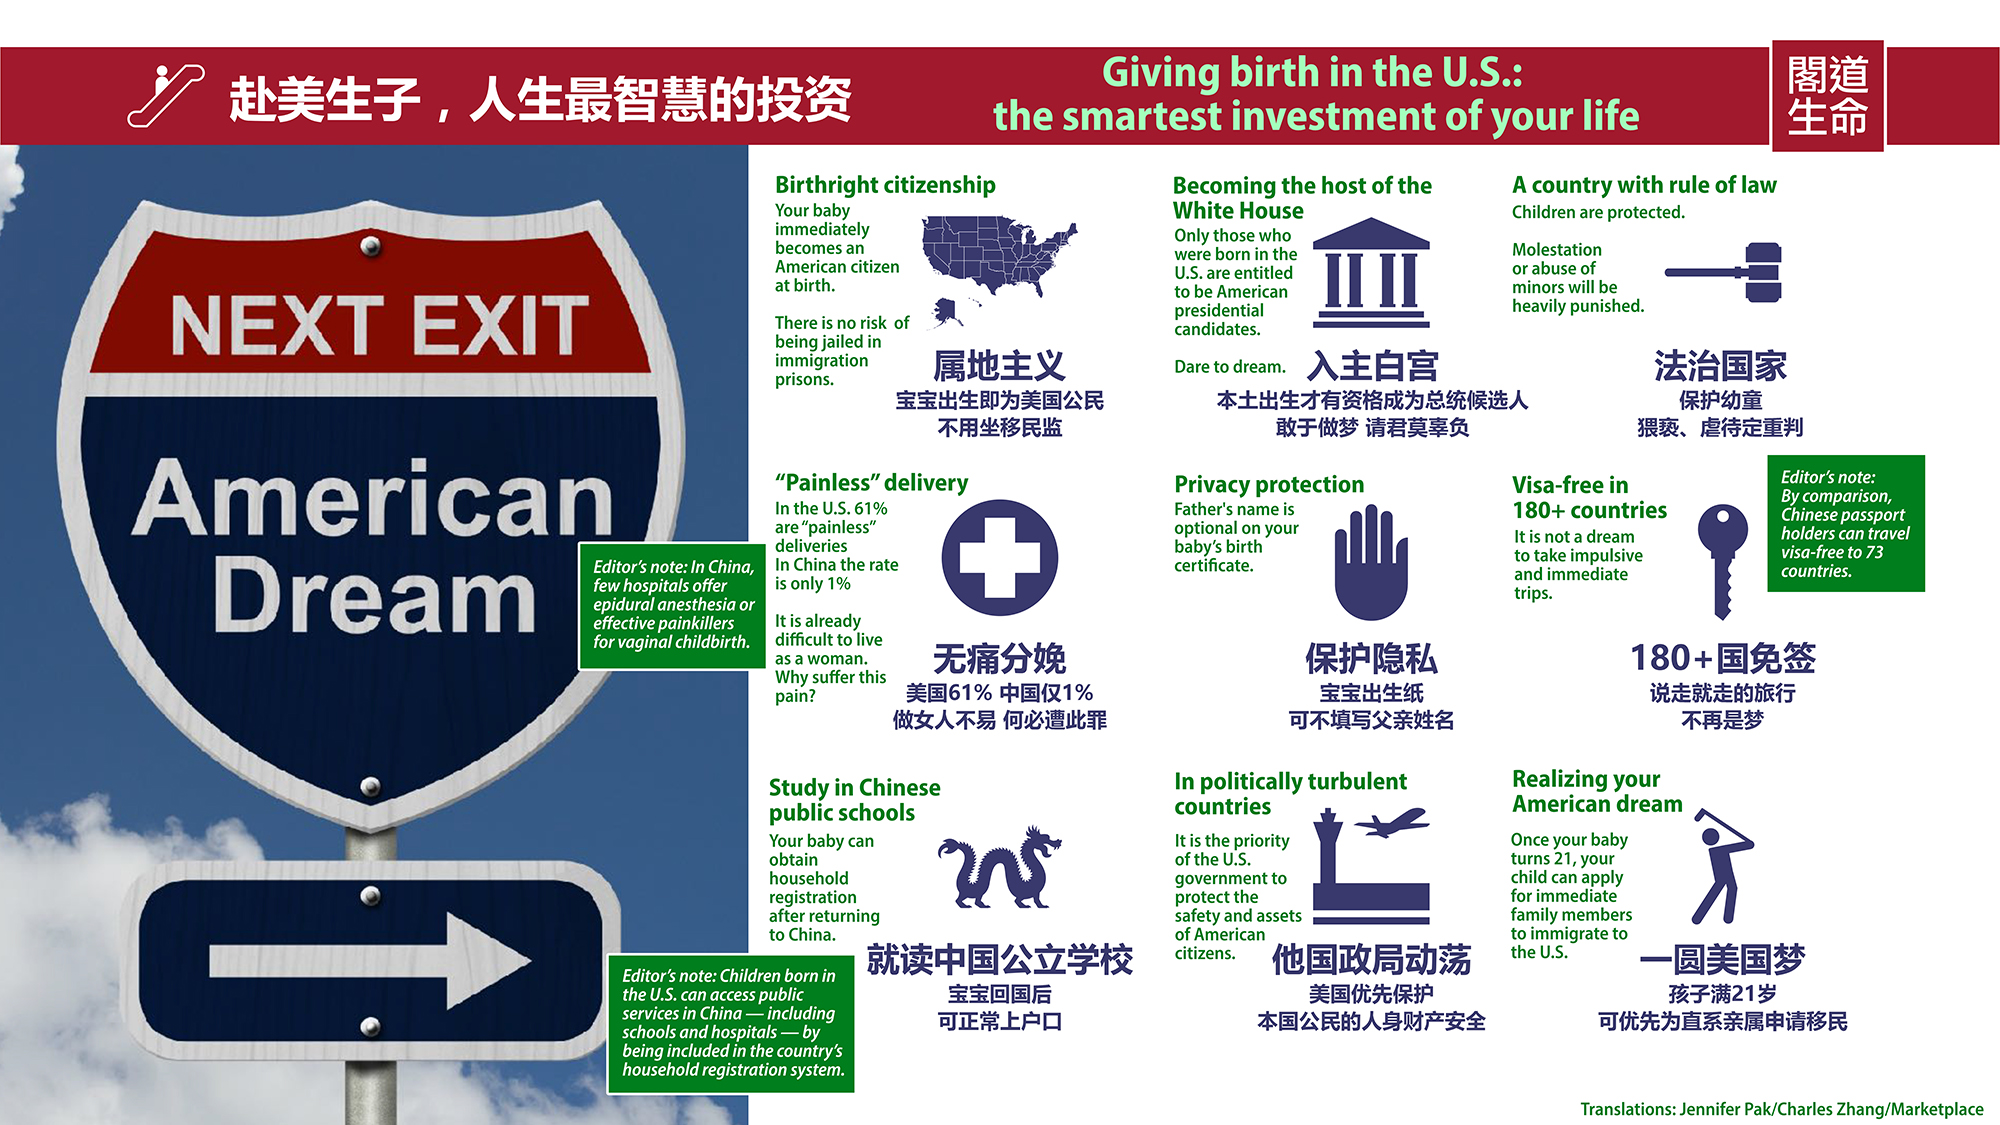 Steps Chinese women take to secure U S  citizenship for their babies